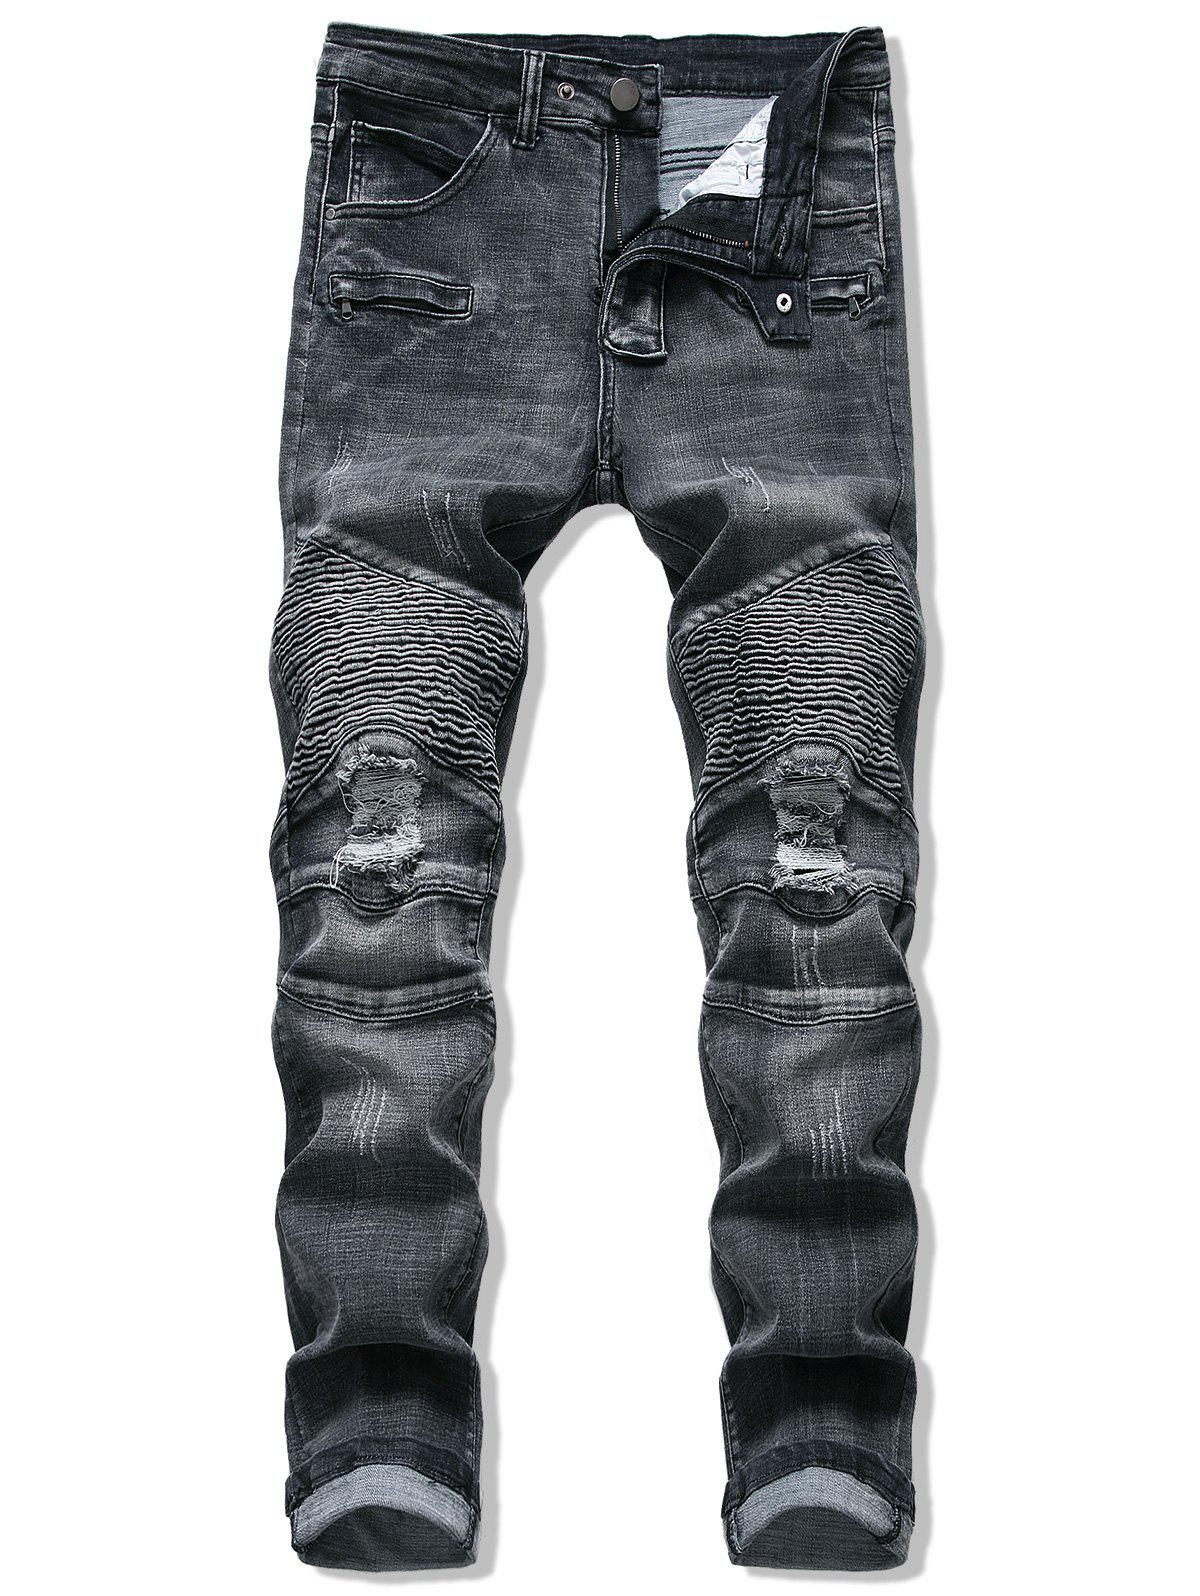 Store Pleated Patchwork Ripped Jeans